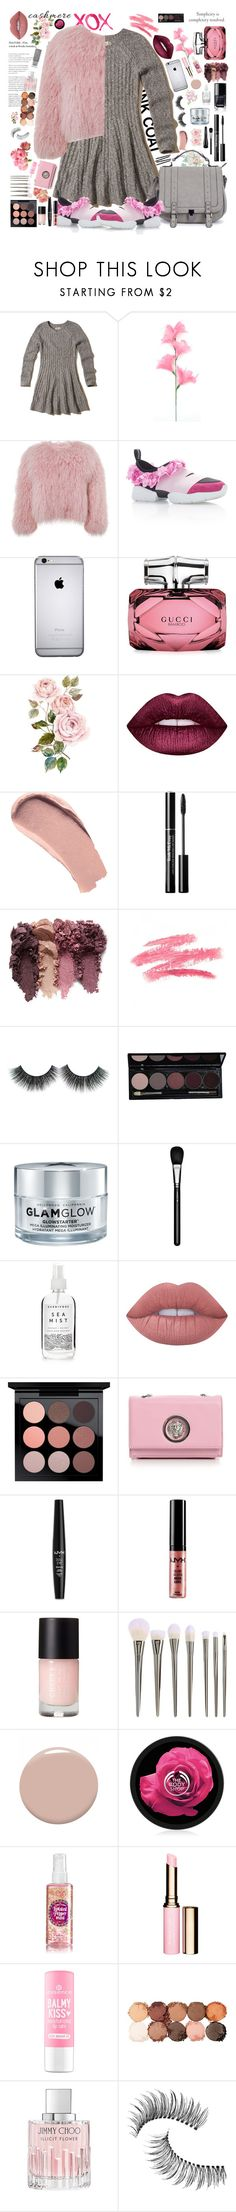 """""""Grey and pink"""" by jooseefiinee ❤ liked on Polyvore featuring GALA, Hollister Co., Charlotte Simone, Gucci, Lime Crime, Burberry, GlamGlow, MAC Cosmetics, Herbivore and Arbonne"""